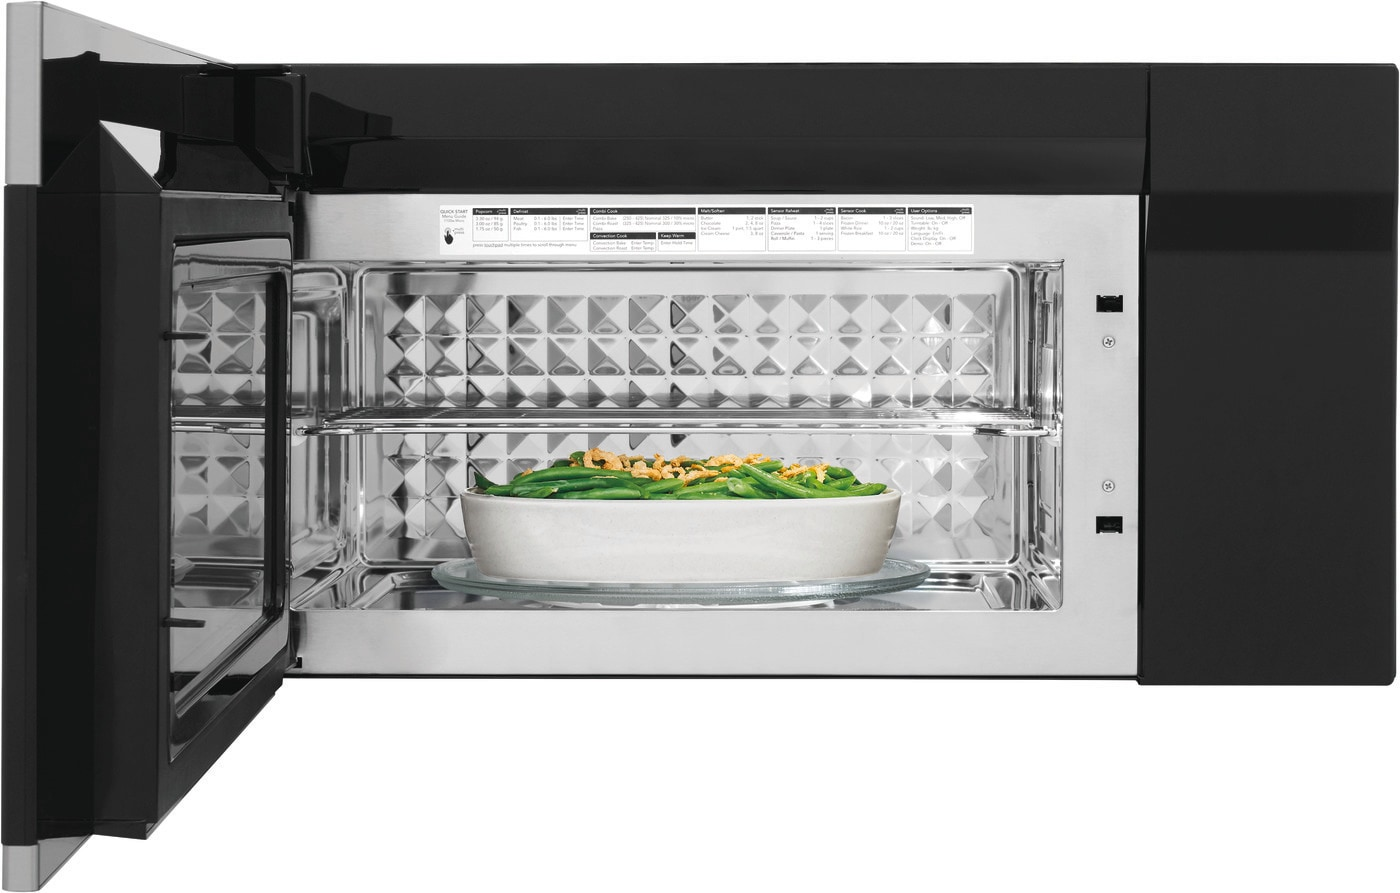 1.5 Cu. Ft. Over-The-Range Microwave with Convection Stainless Steel FGBM15WCVF